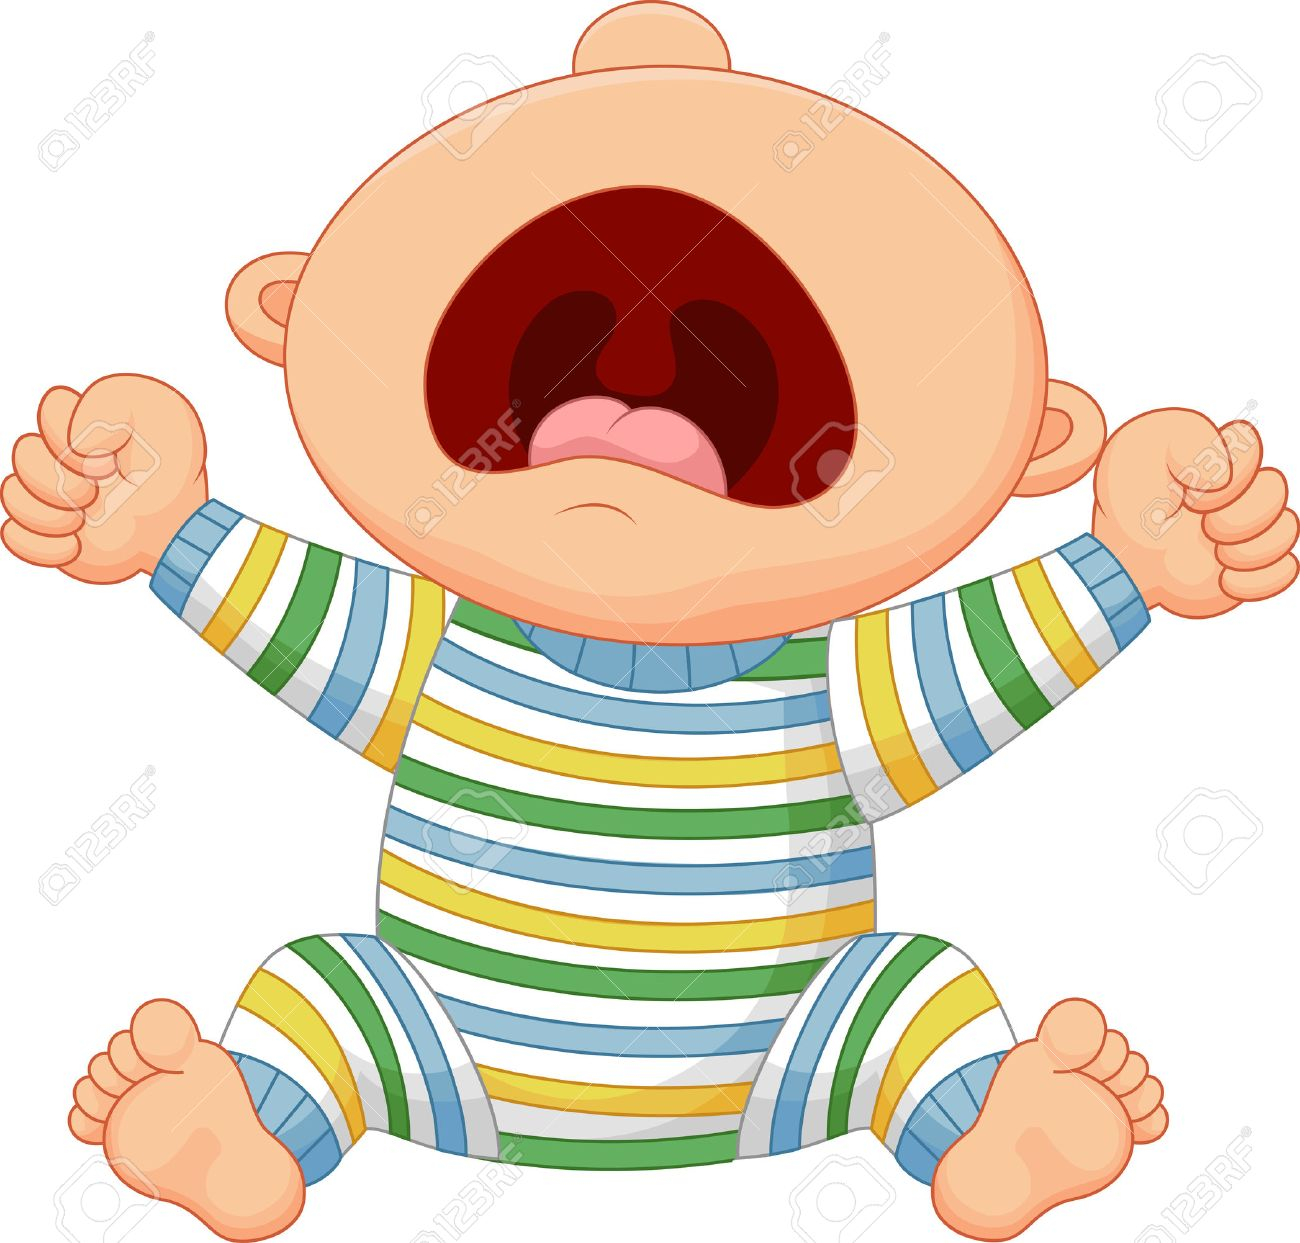 Cartoon Baby Boy Crying Royalty Free Cliparts Vectors And Stock Illustration Image 41384991